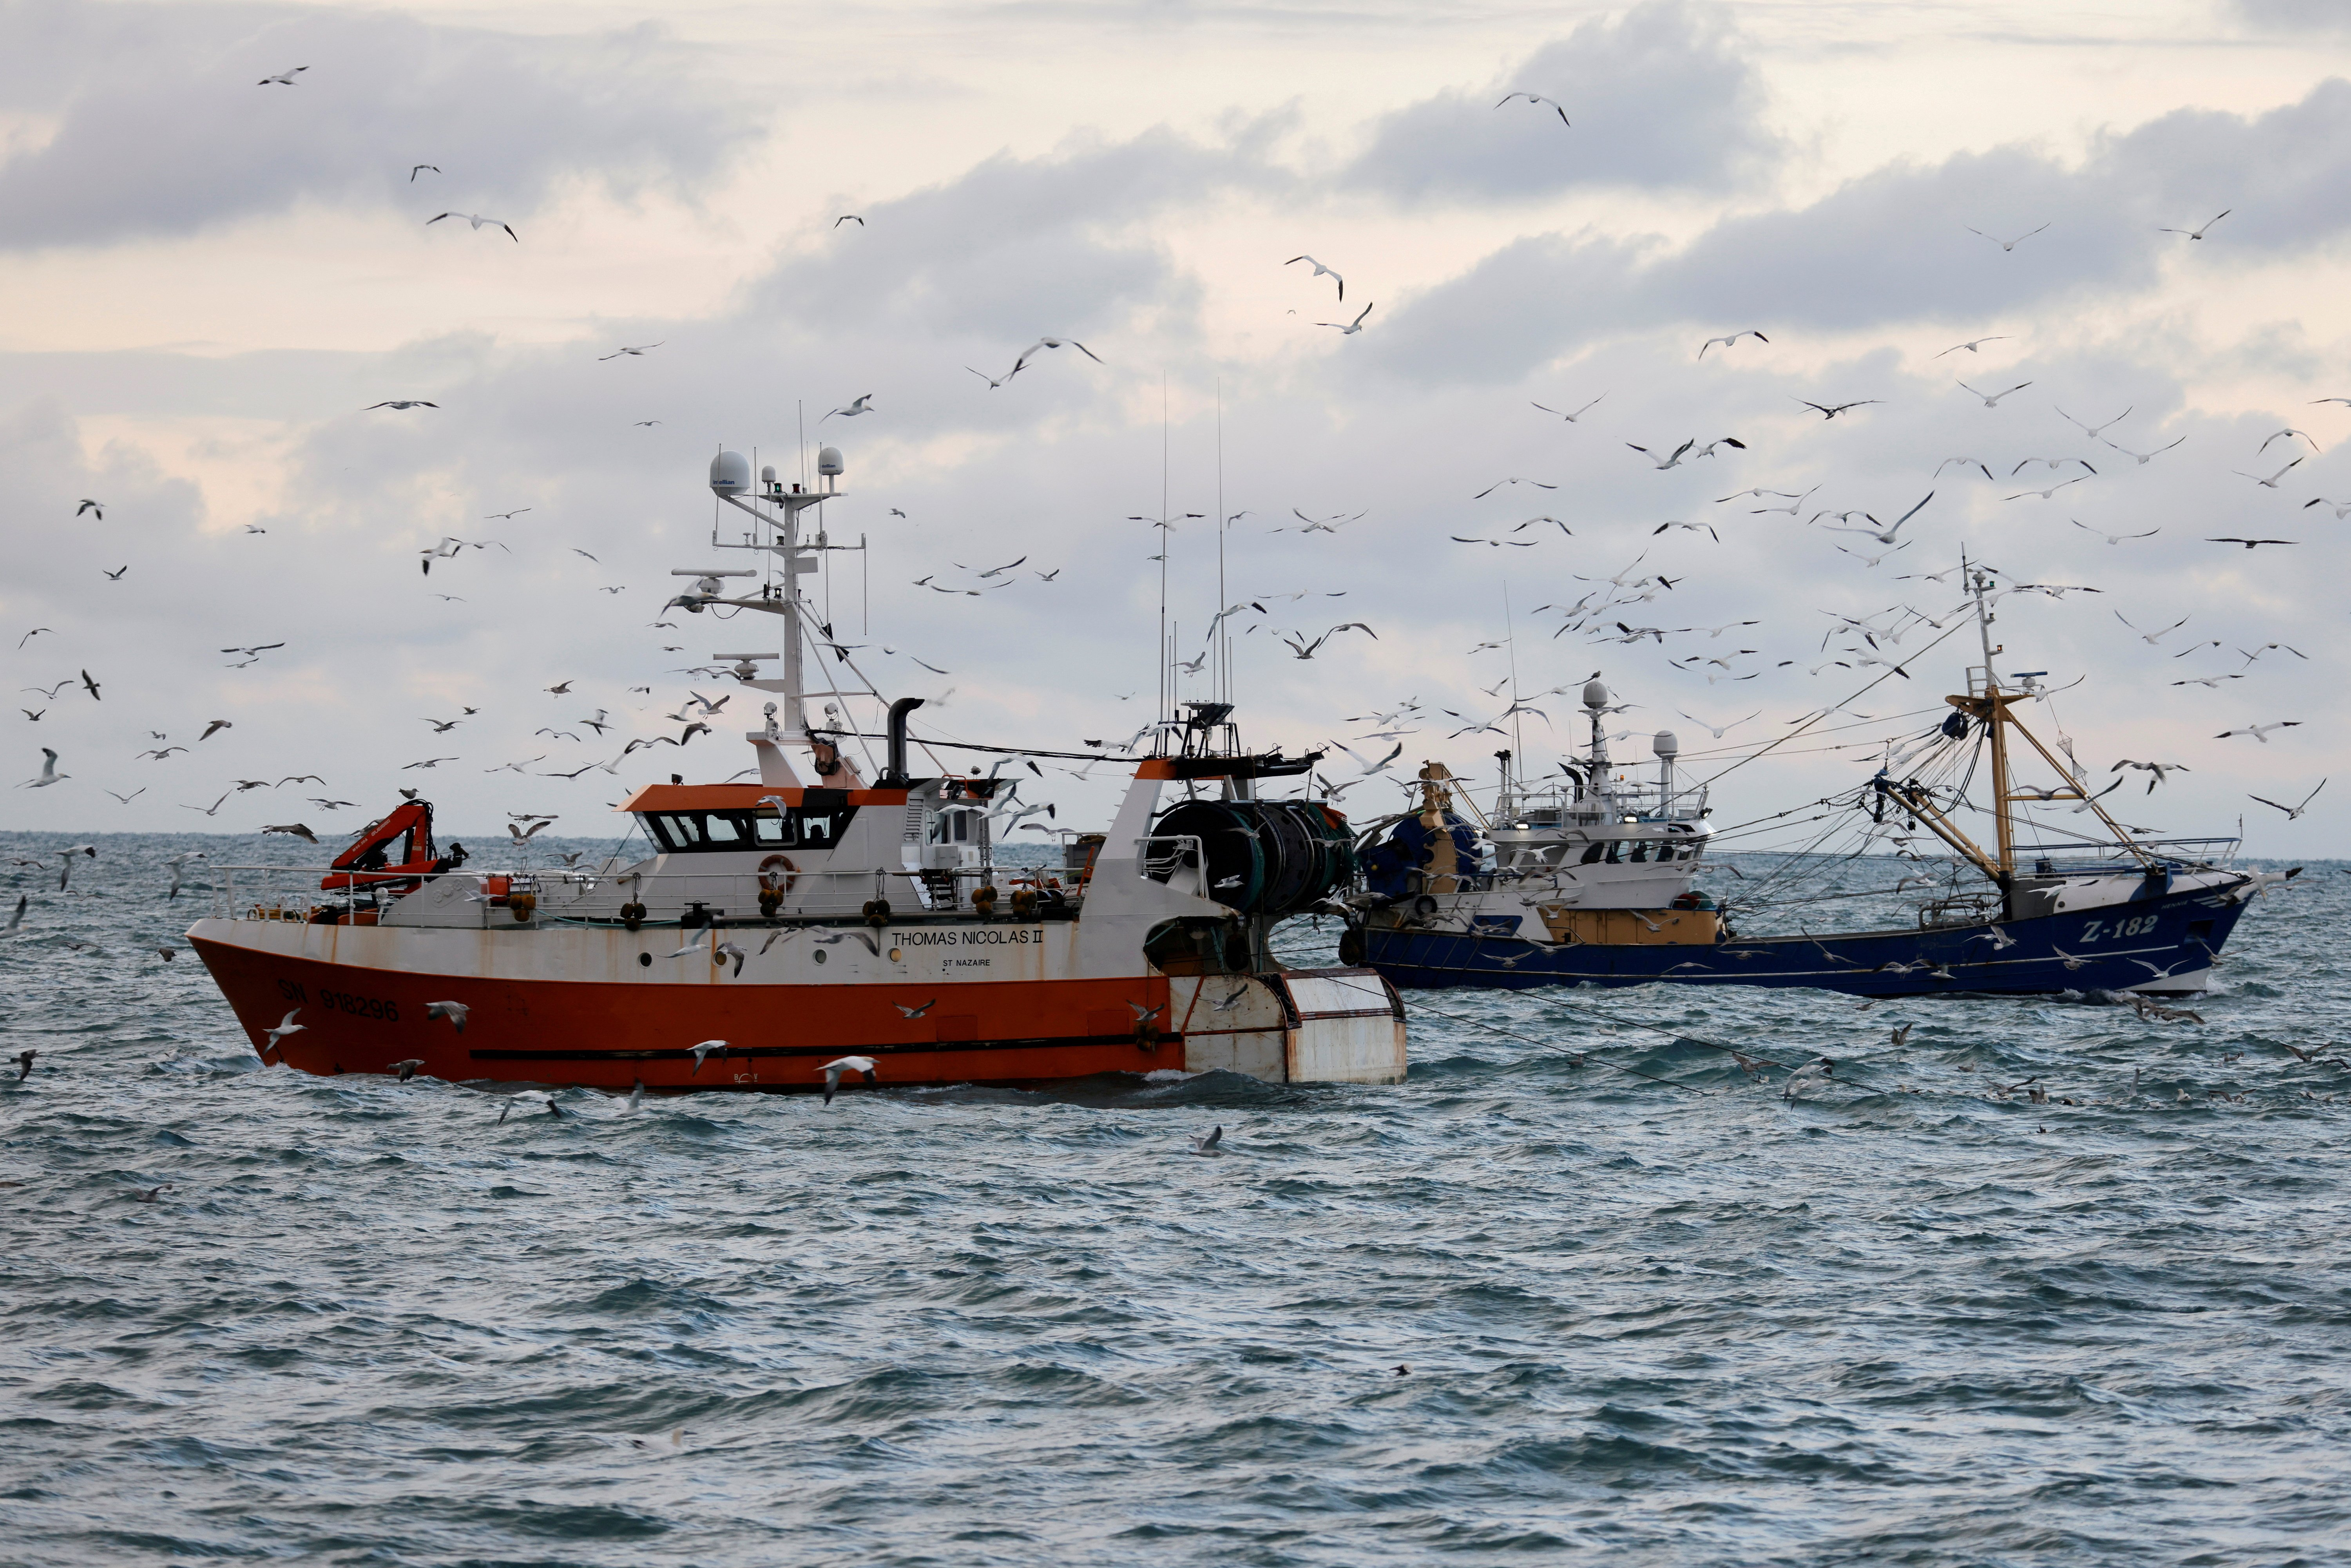 """The French trawler """"Thomas Nicolas II"""" sails past a Dutch trawler in the North Sea, off the coast of northern France, December 7, 2020. Picture taken with a drone December 7, 2020. (Reuters filepix)"""